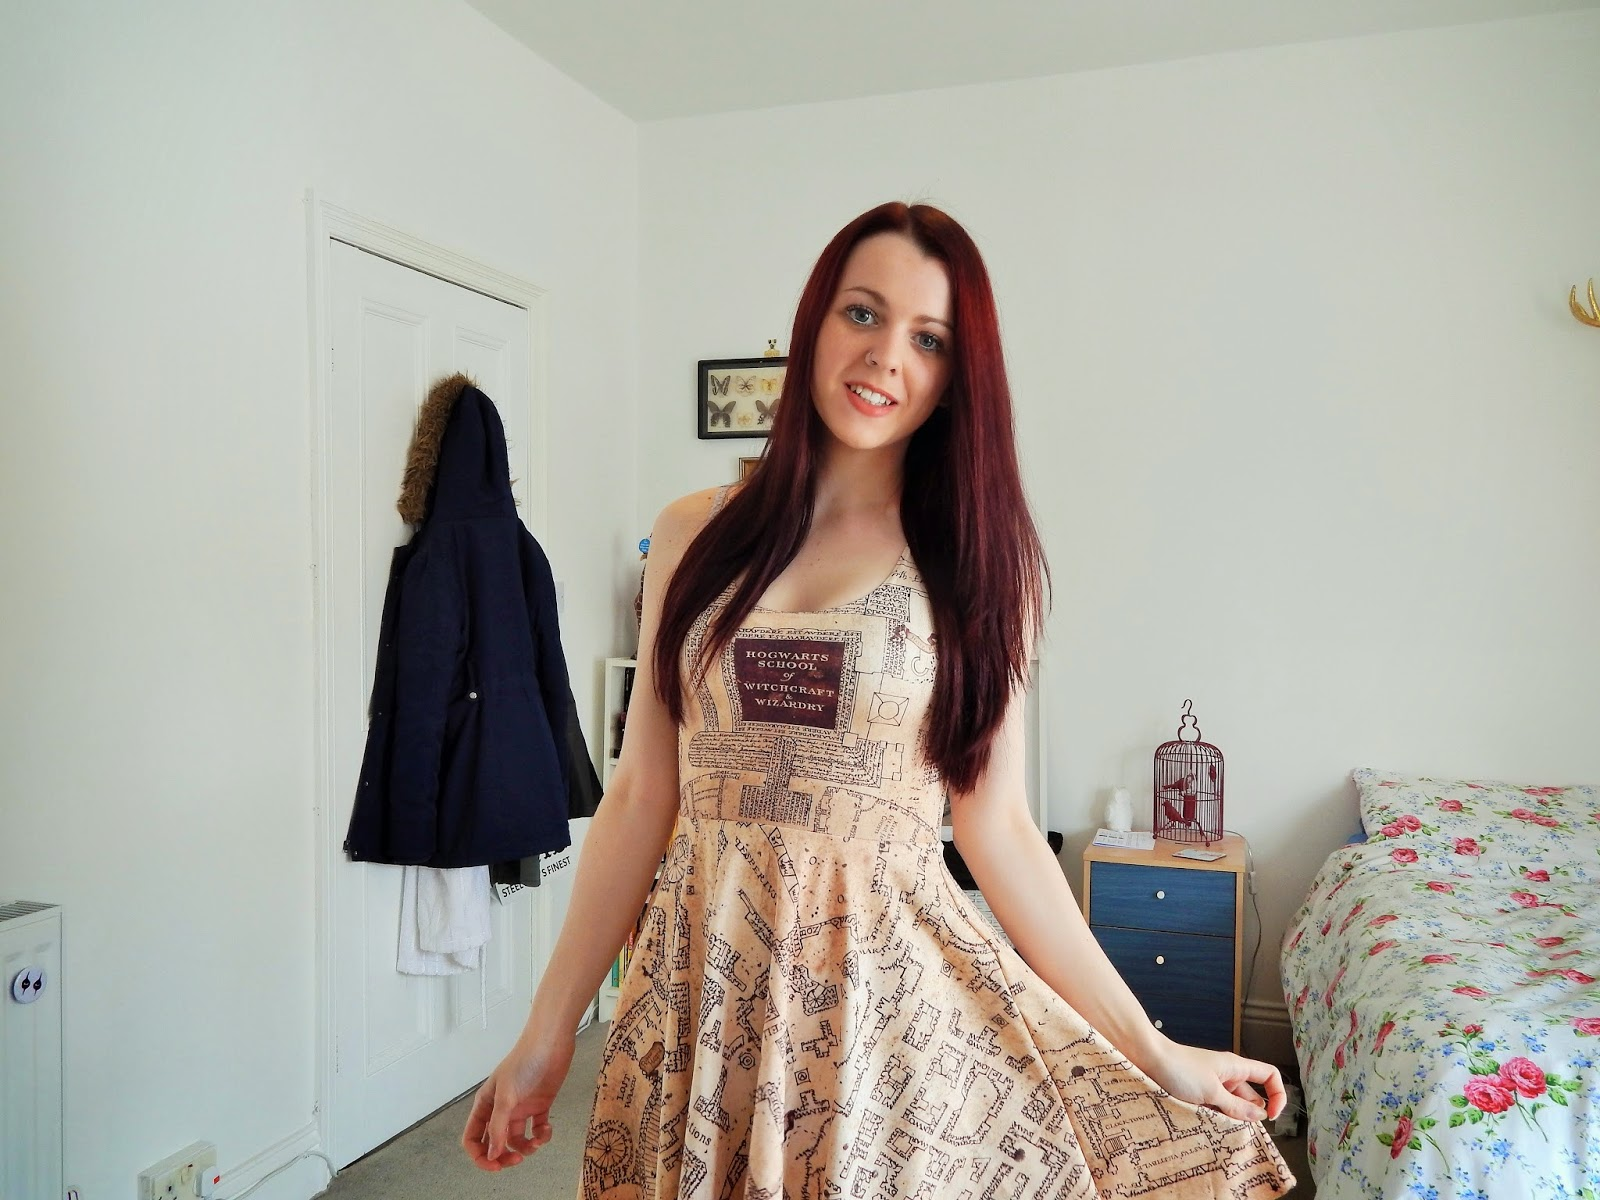 BlackMilk Marauders Map Dress.